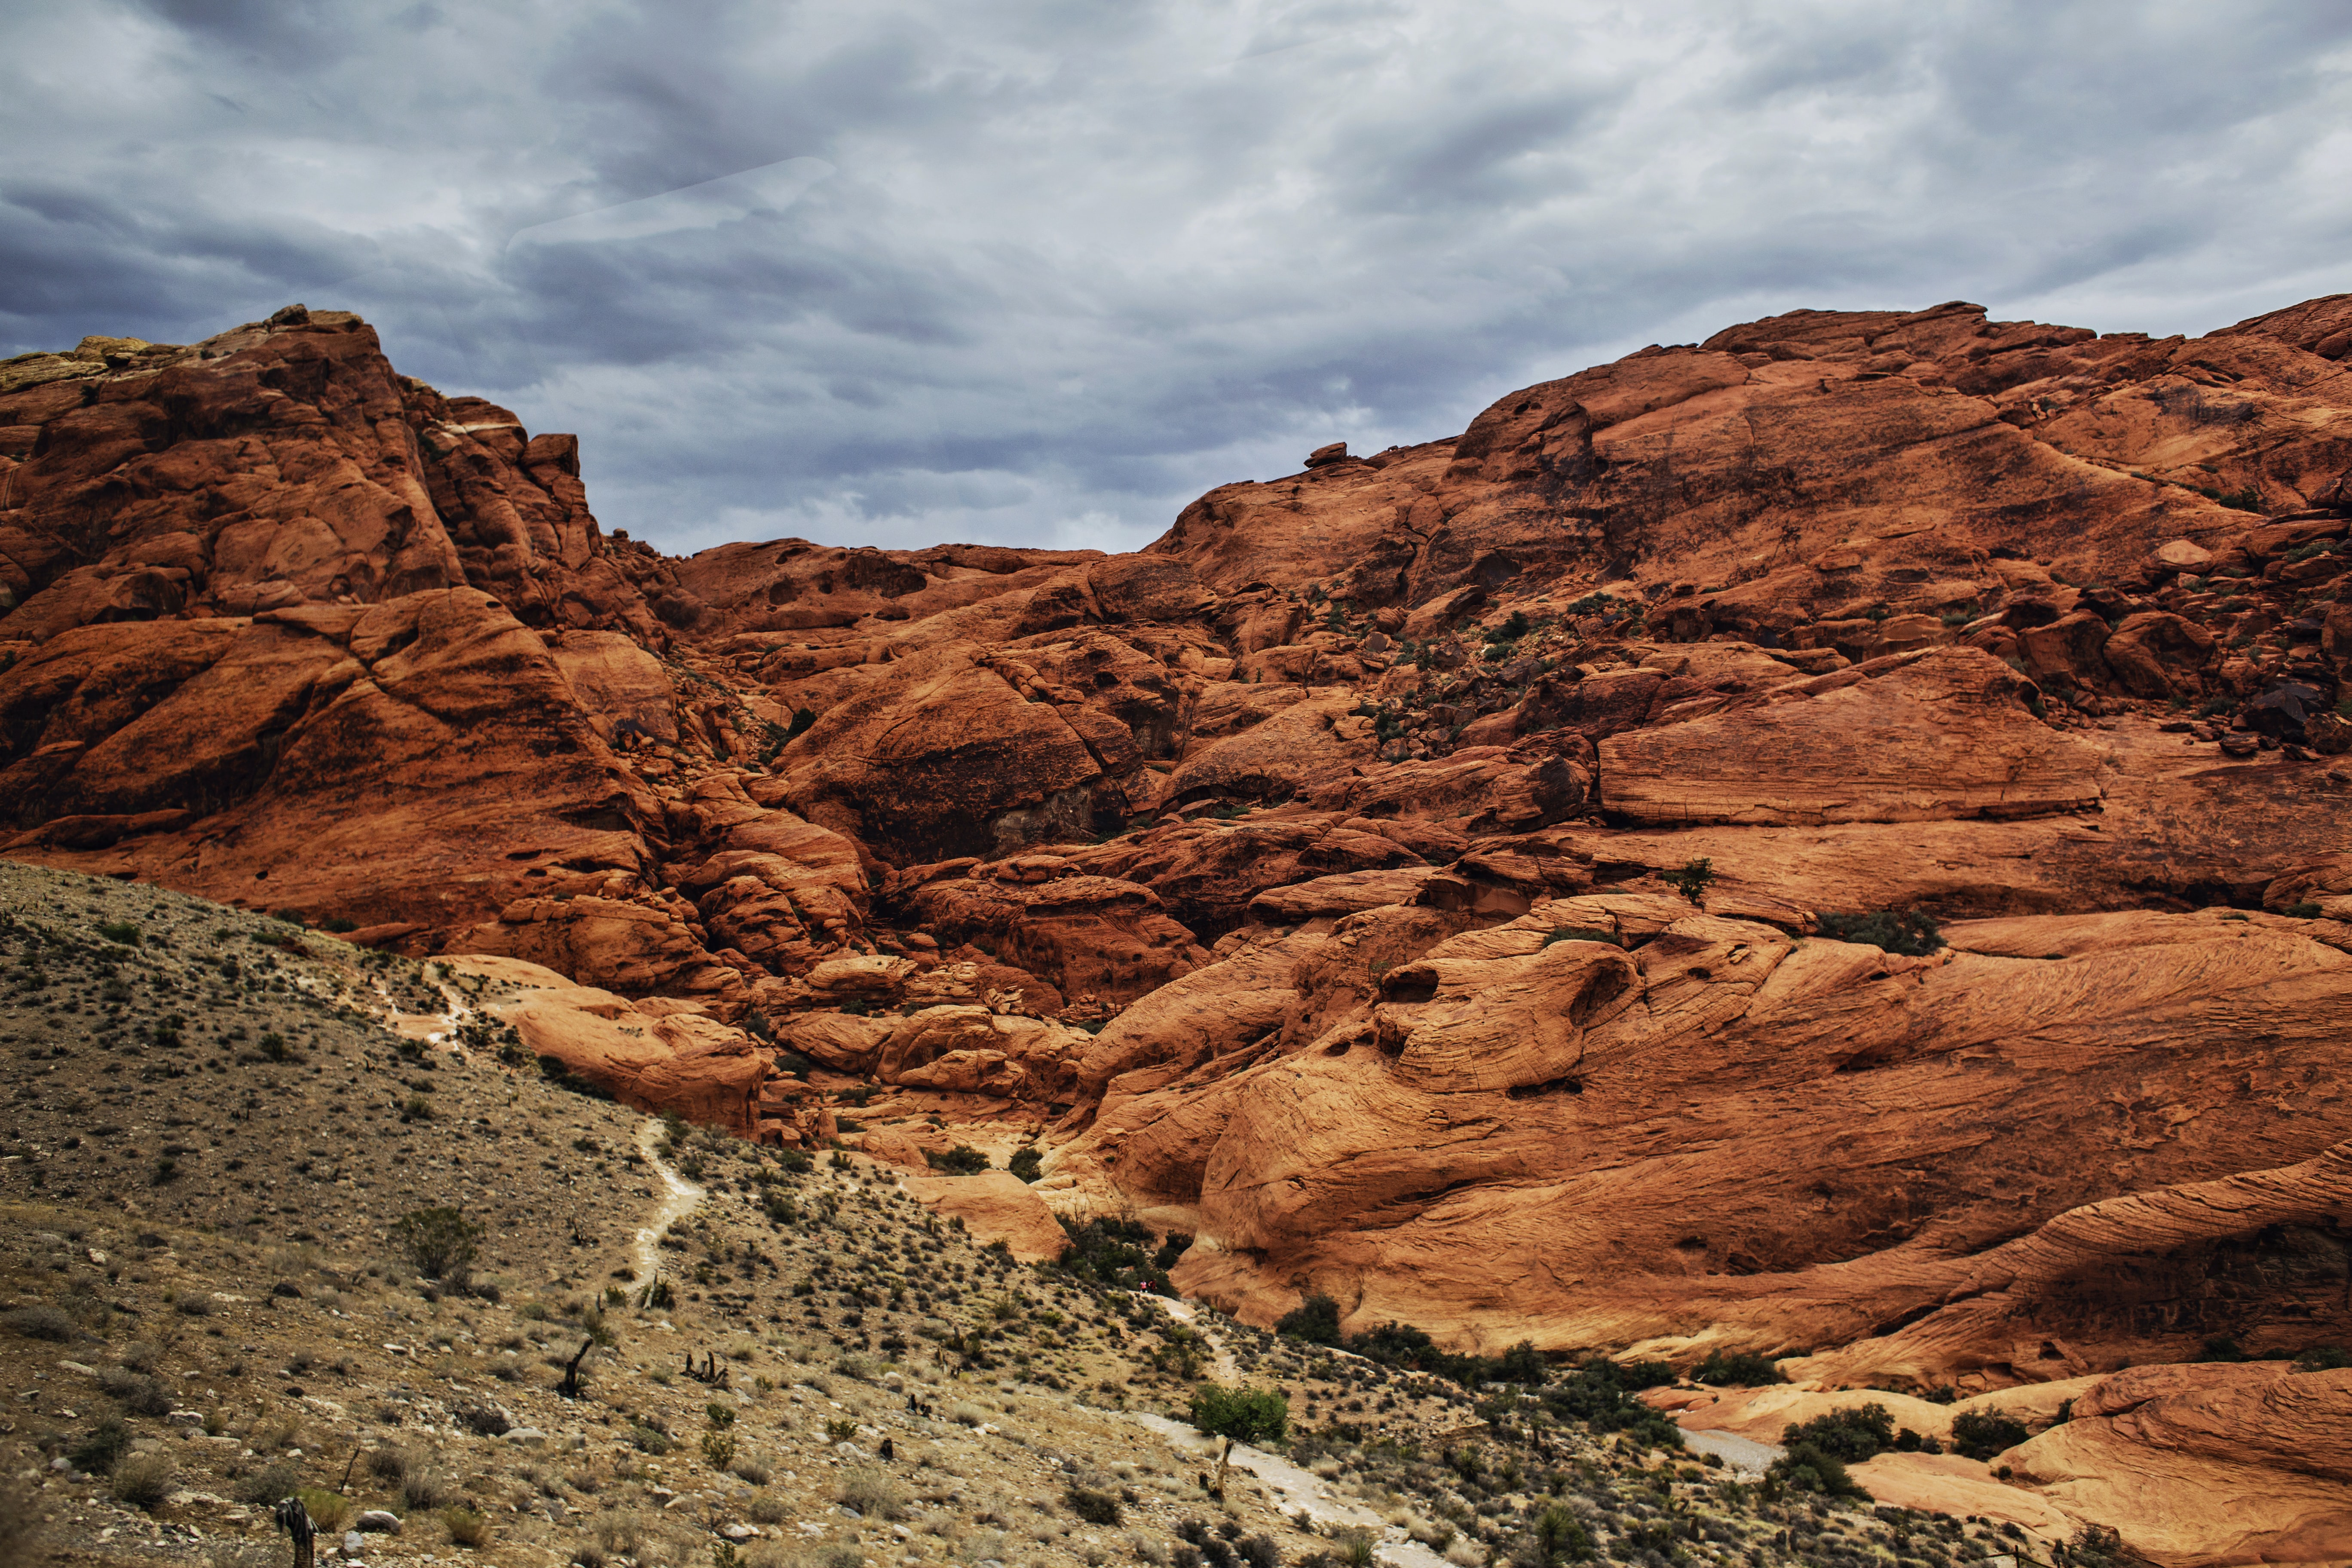 Mountainside view of Red Rock Canyon National Conservation Area